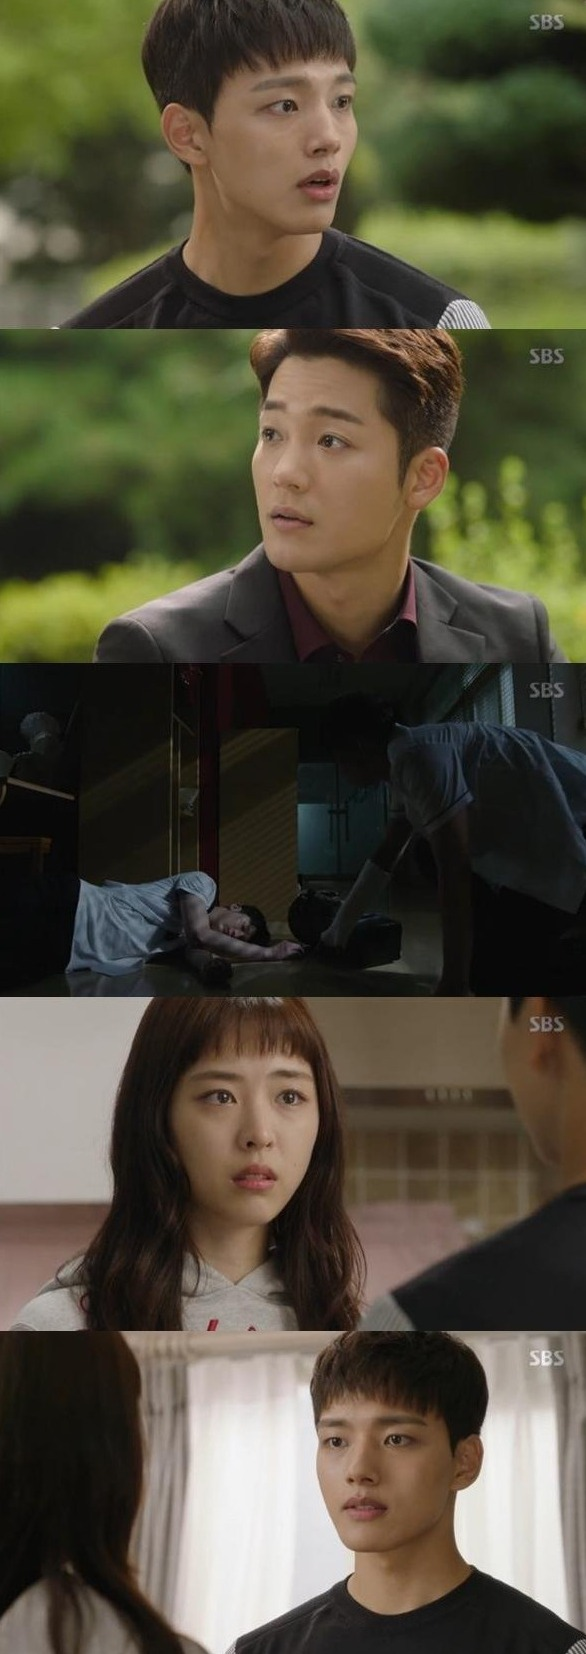 [Spoiler] Added episodes 33 and 34 captures for the Korean drama 'Reunited Worlds'